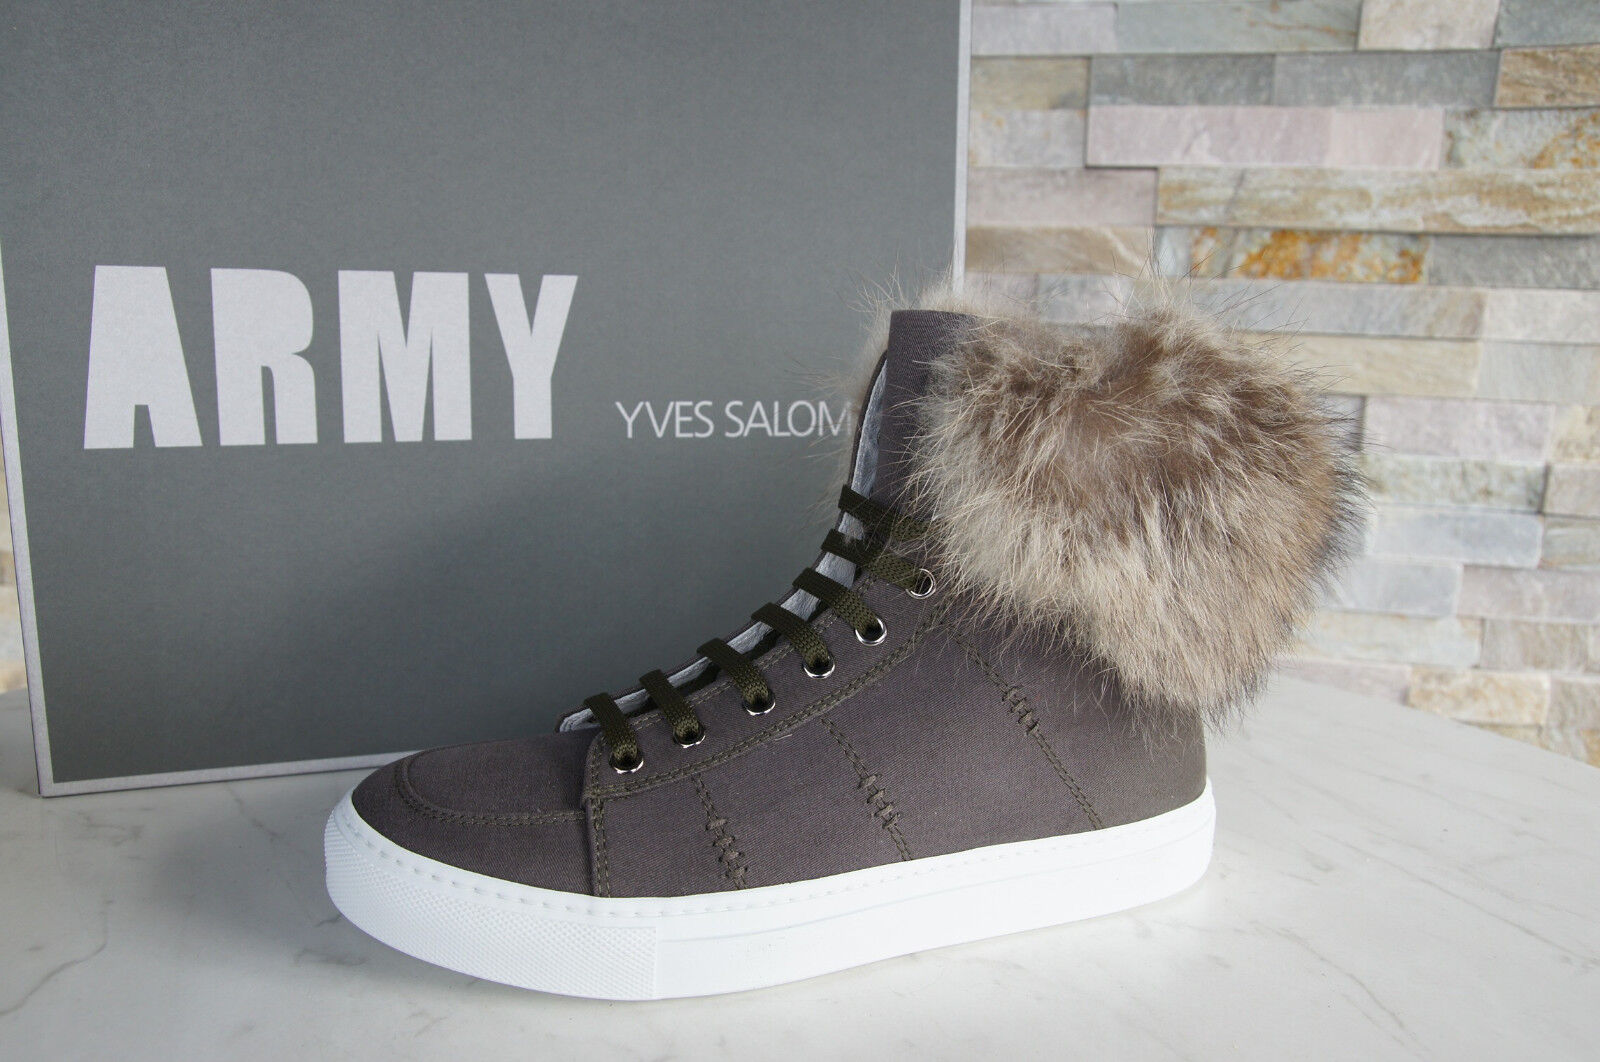 Army Yves Salomon 41 High Top Sneakers Marmot fur shoes New Previously